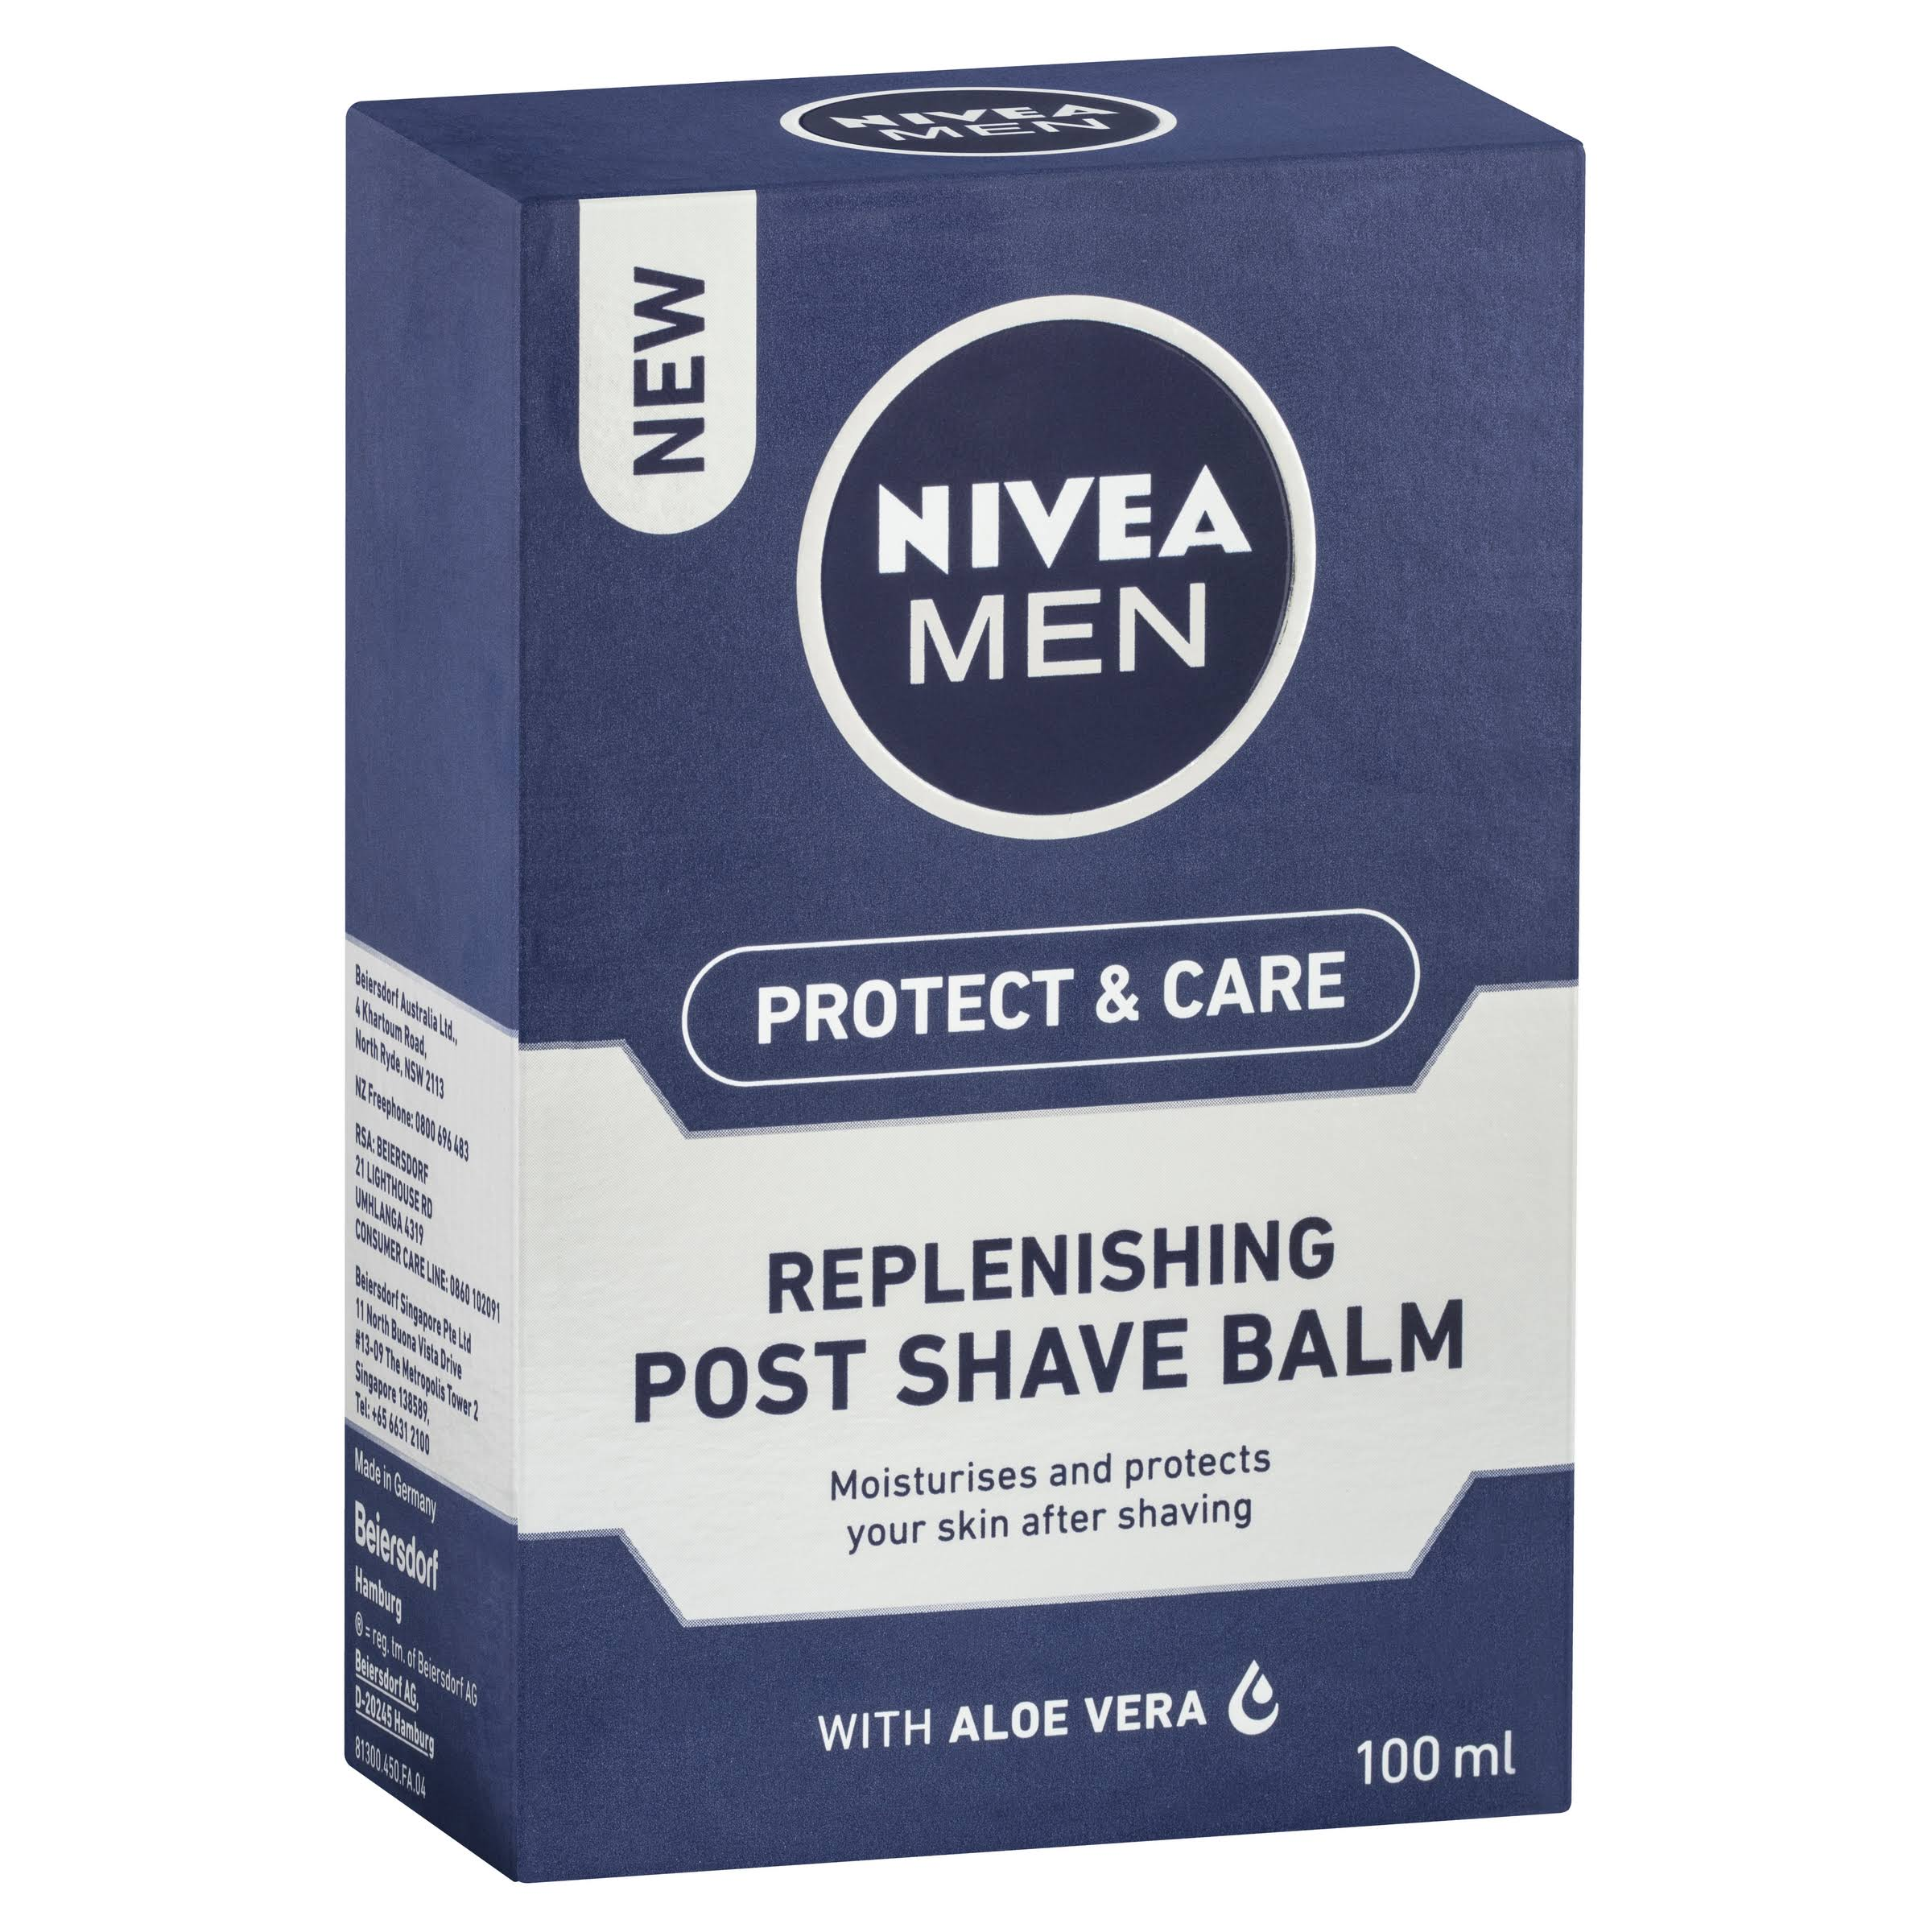 Nivea Men Protect and Care Replenishing Post Shave Balm - 100ml